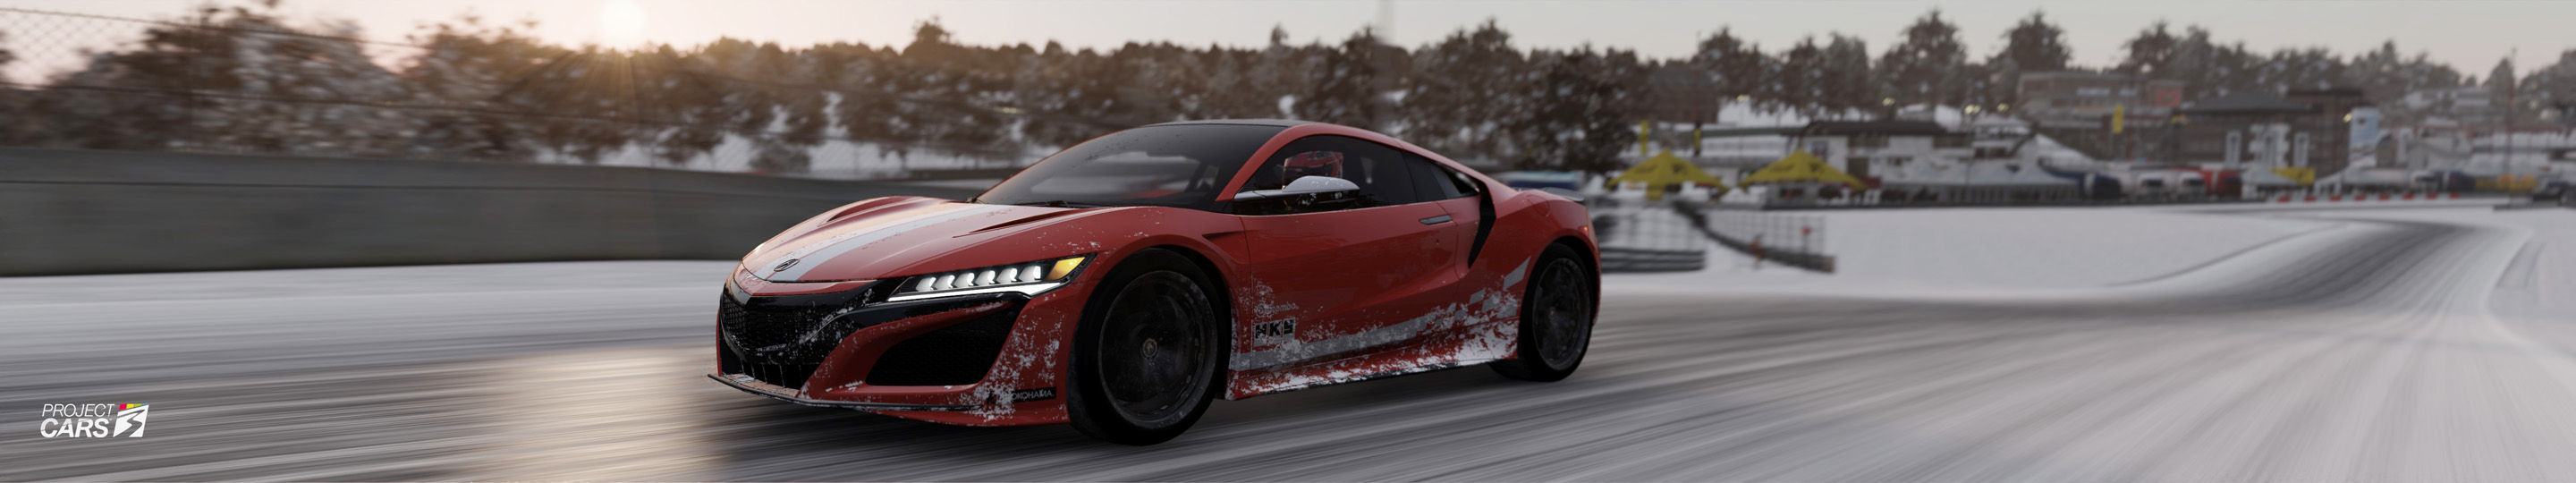 1 PROJECT CARS 3 ACURA NSX 2020 at ZOLDER Snow copy.jpg